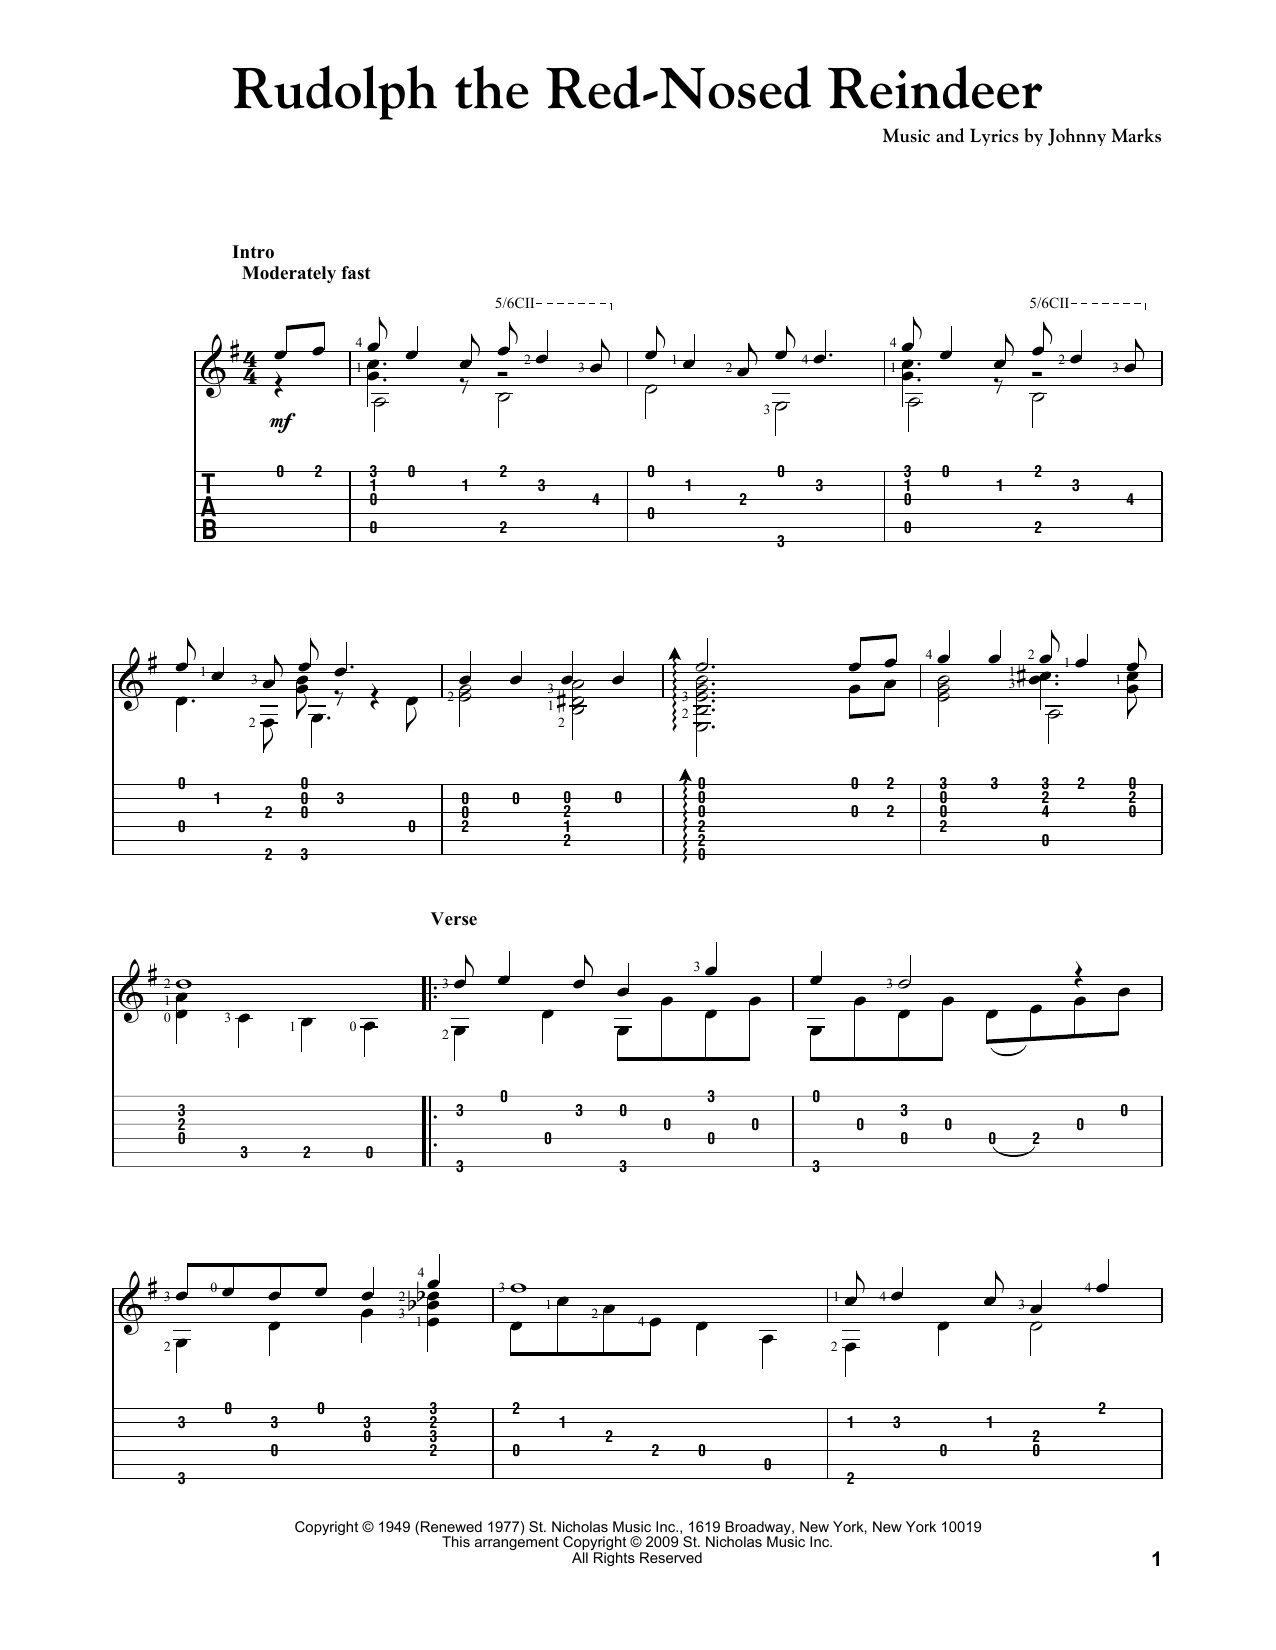 Rudolph The Red-Nosed Reindeer (Solo Guitar Tab)